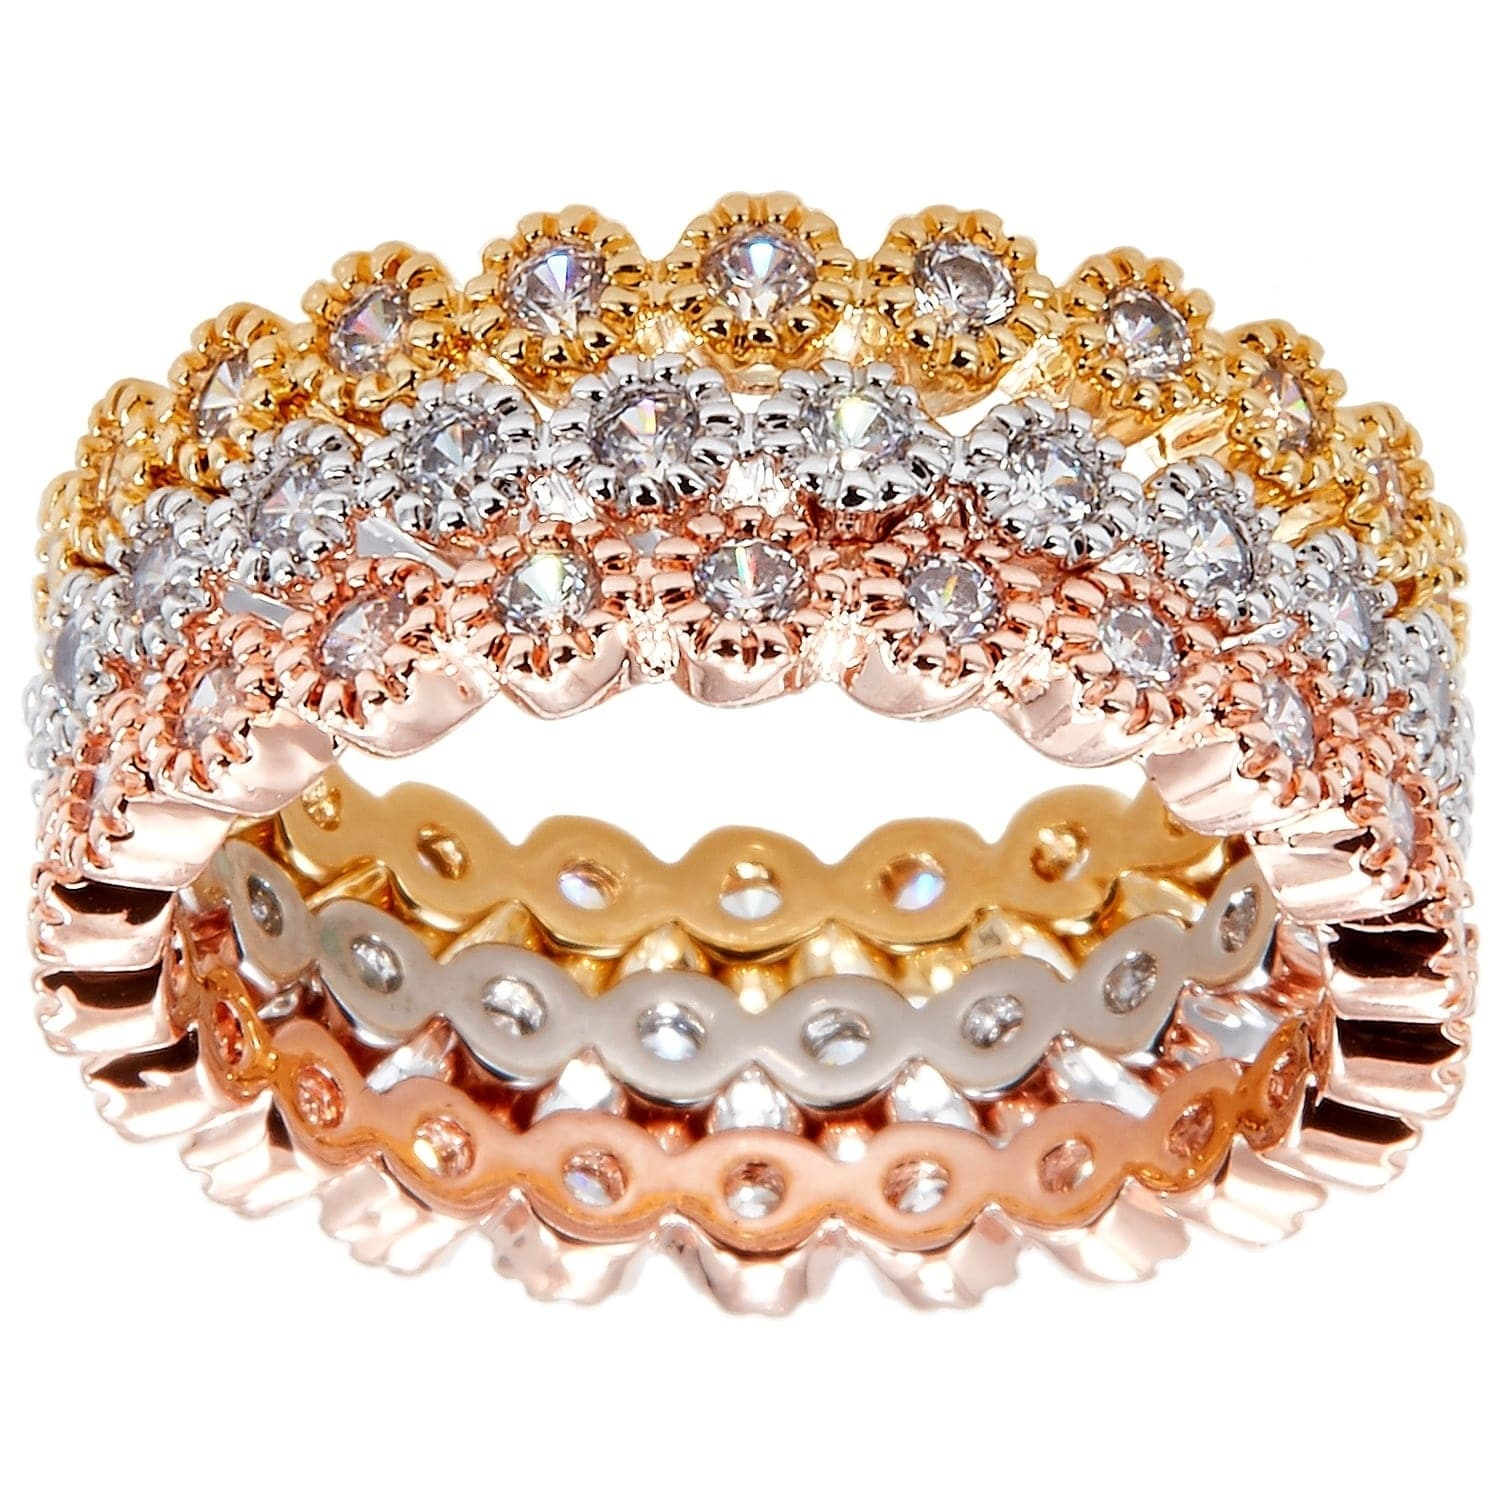 Simon Frank 14k Yellow Gold/ Rose Gold and Rhodium Ovlerl...